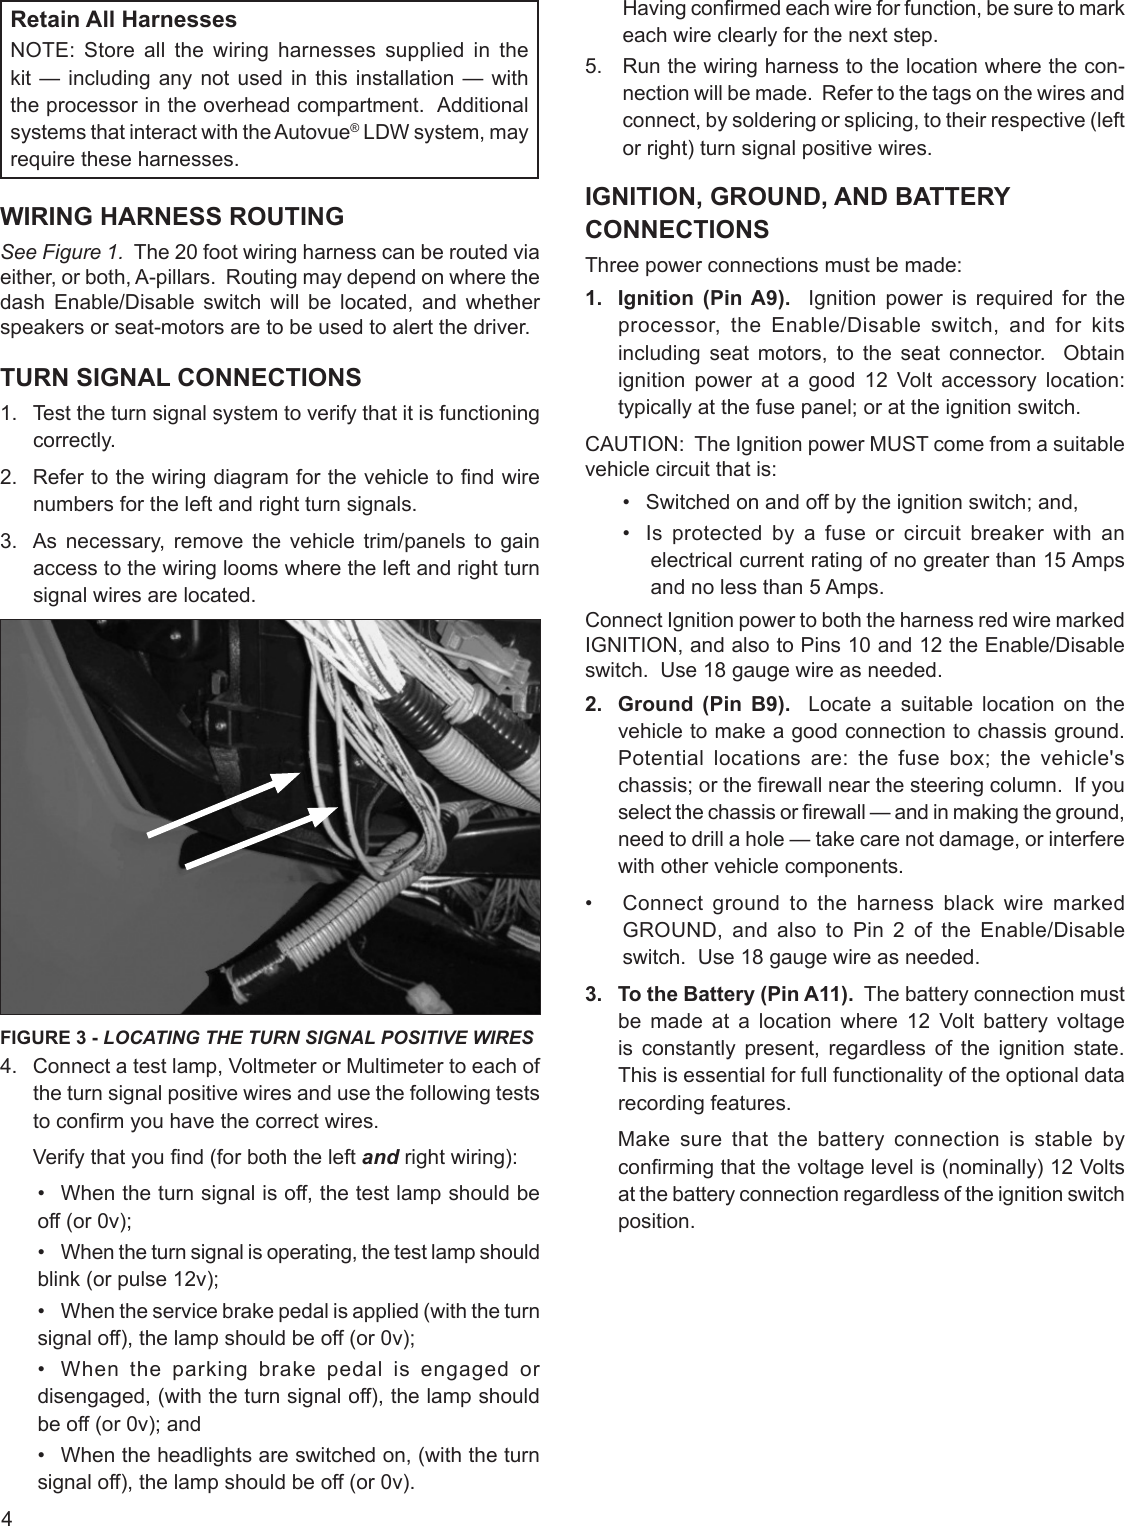 Bendix S 1580 Users Manual Wiring Harness Function Page 4 Of 12